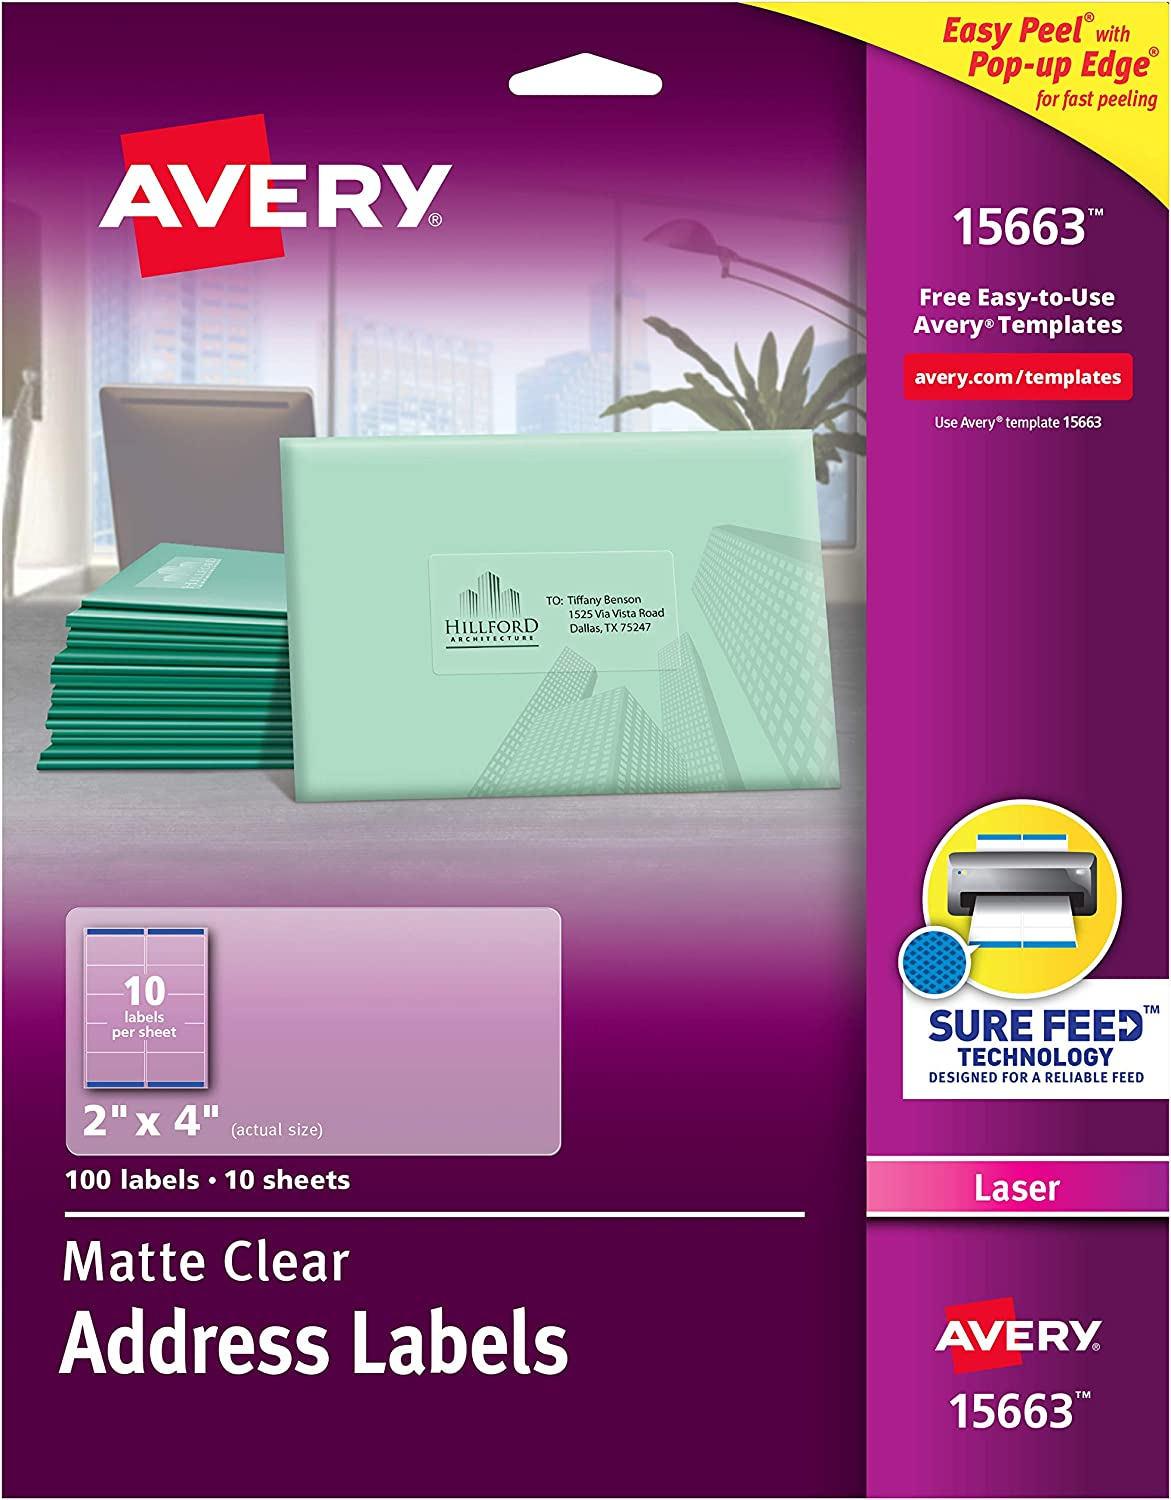 """AVERY Matte Frosted Clear Address Labels for Laser Printers, 2"""" x 4"""", 100 Labels (15663)"""